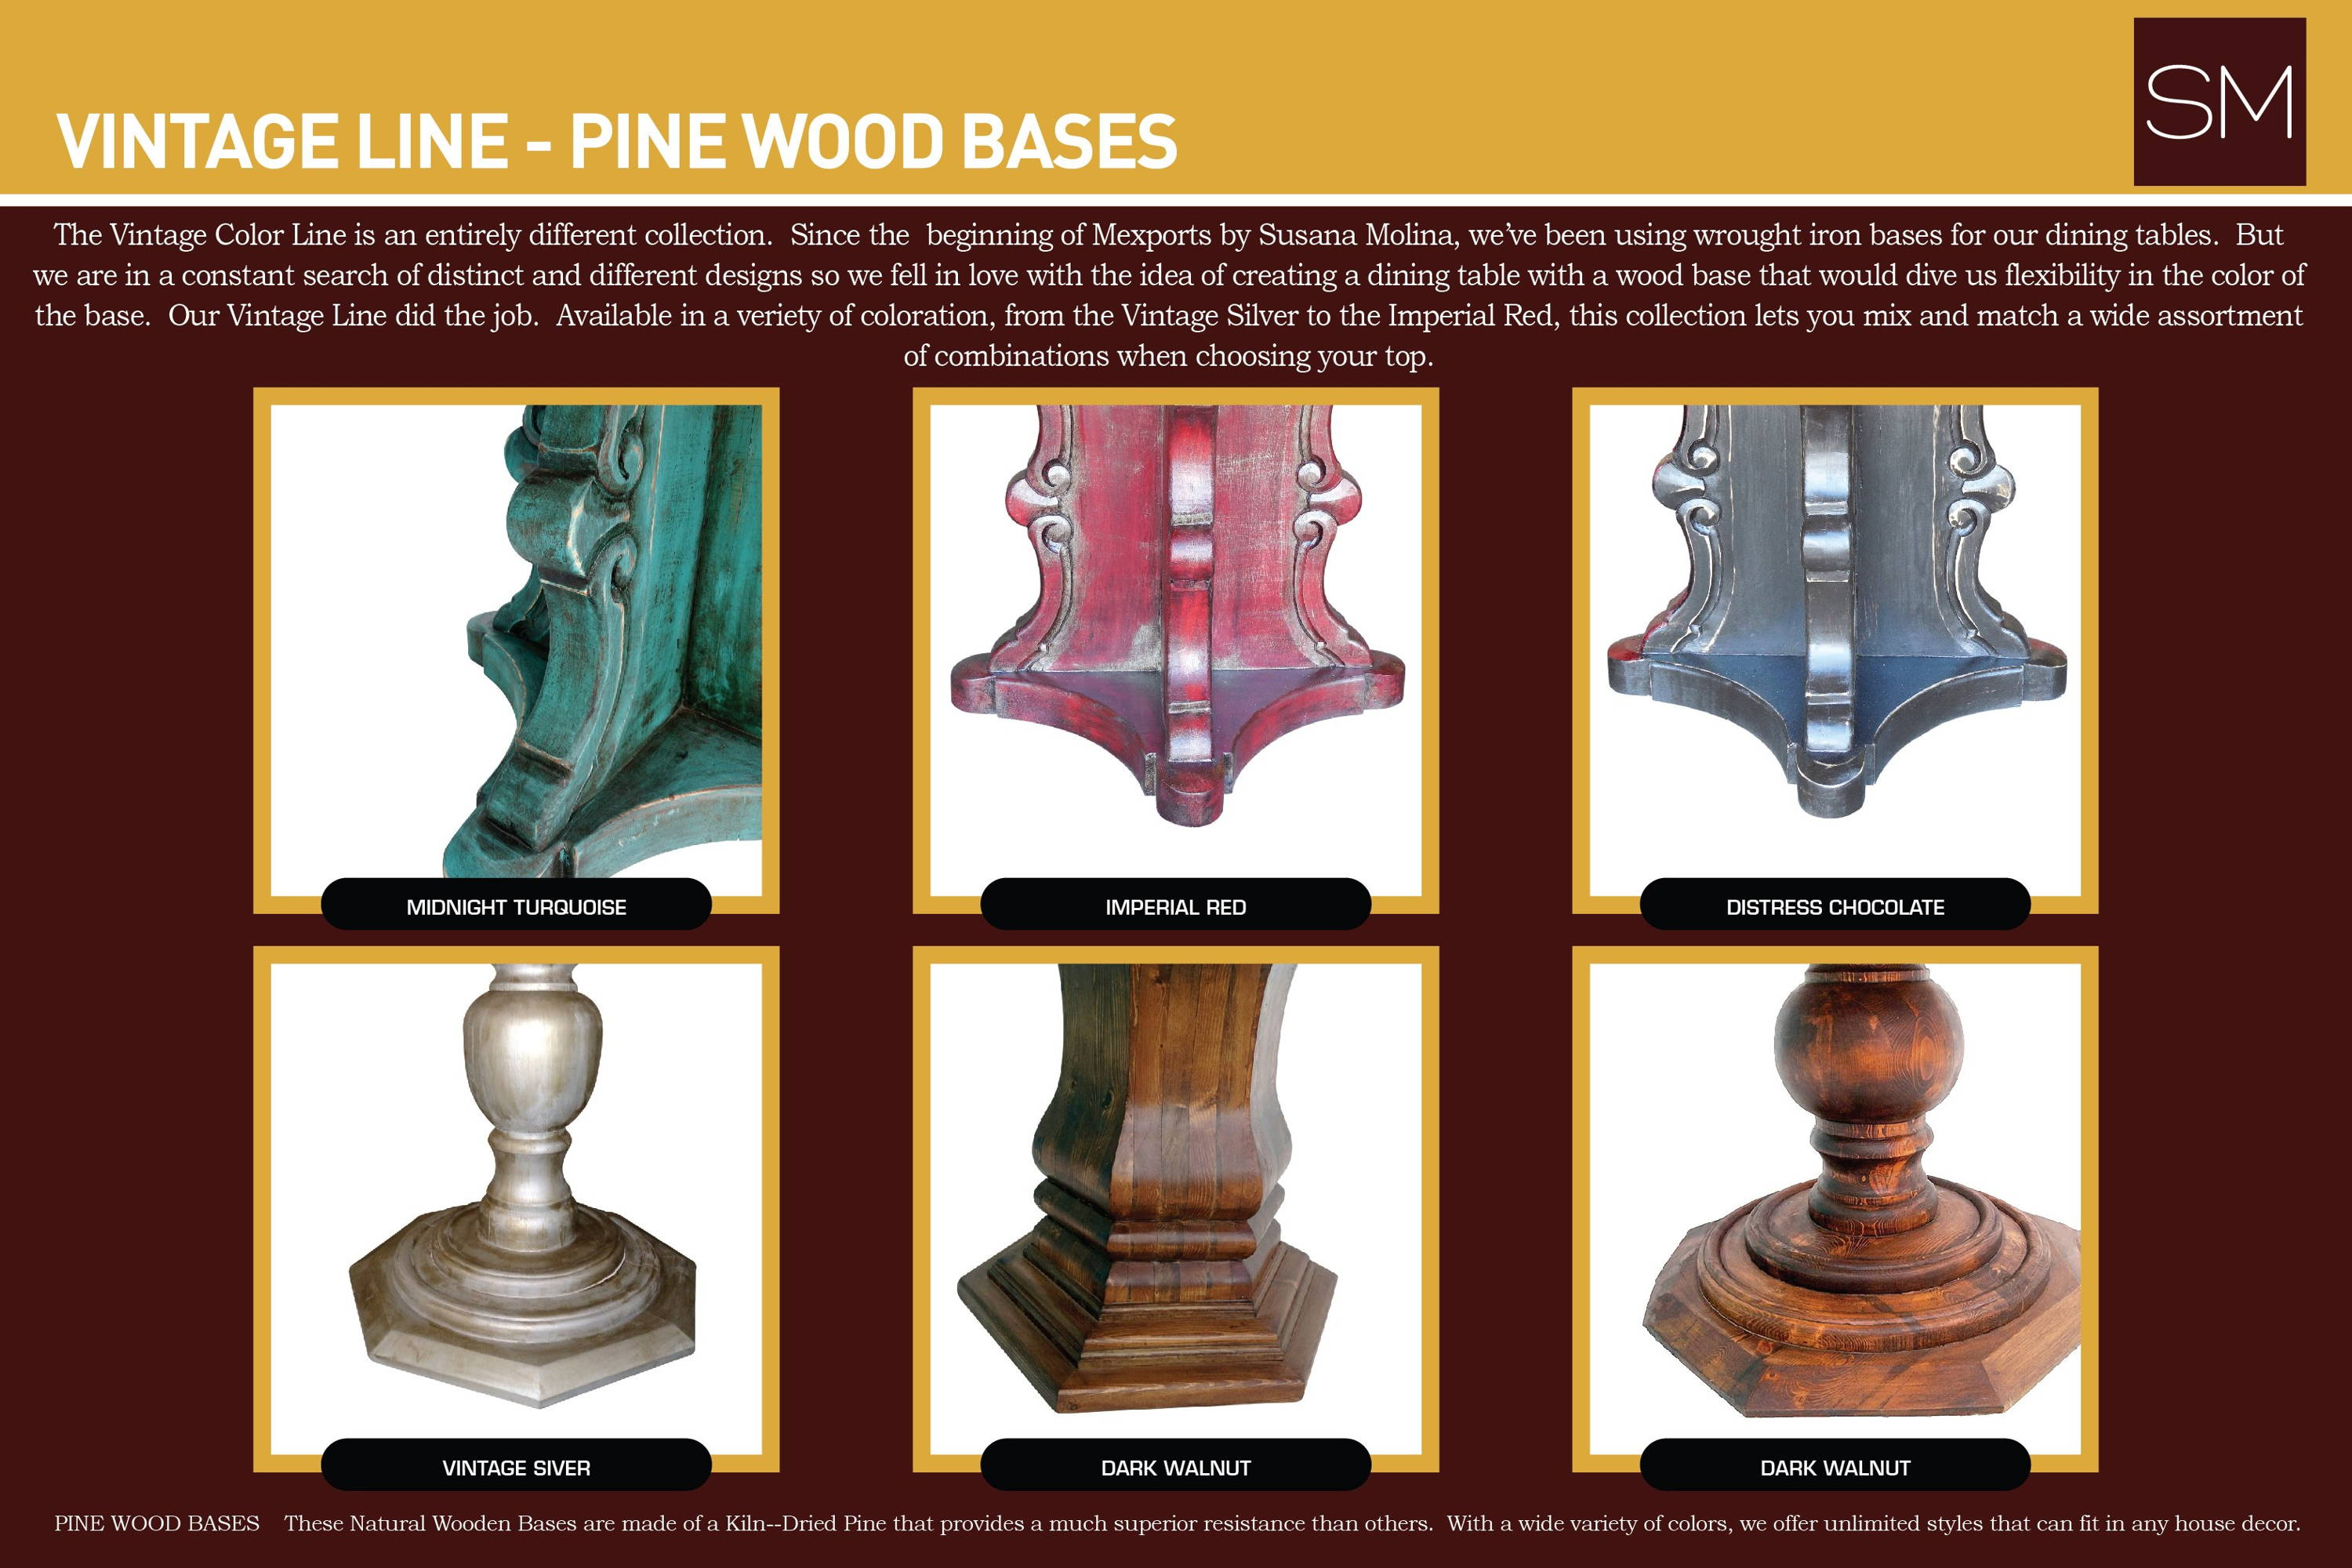 Vintage line - pinewood bases - midnight turquoise, imperial red, distress chocolate, vintage silver, dark walnut